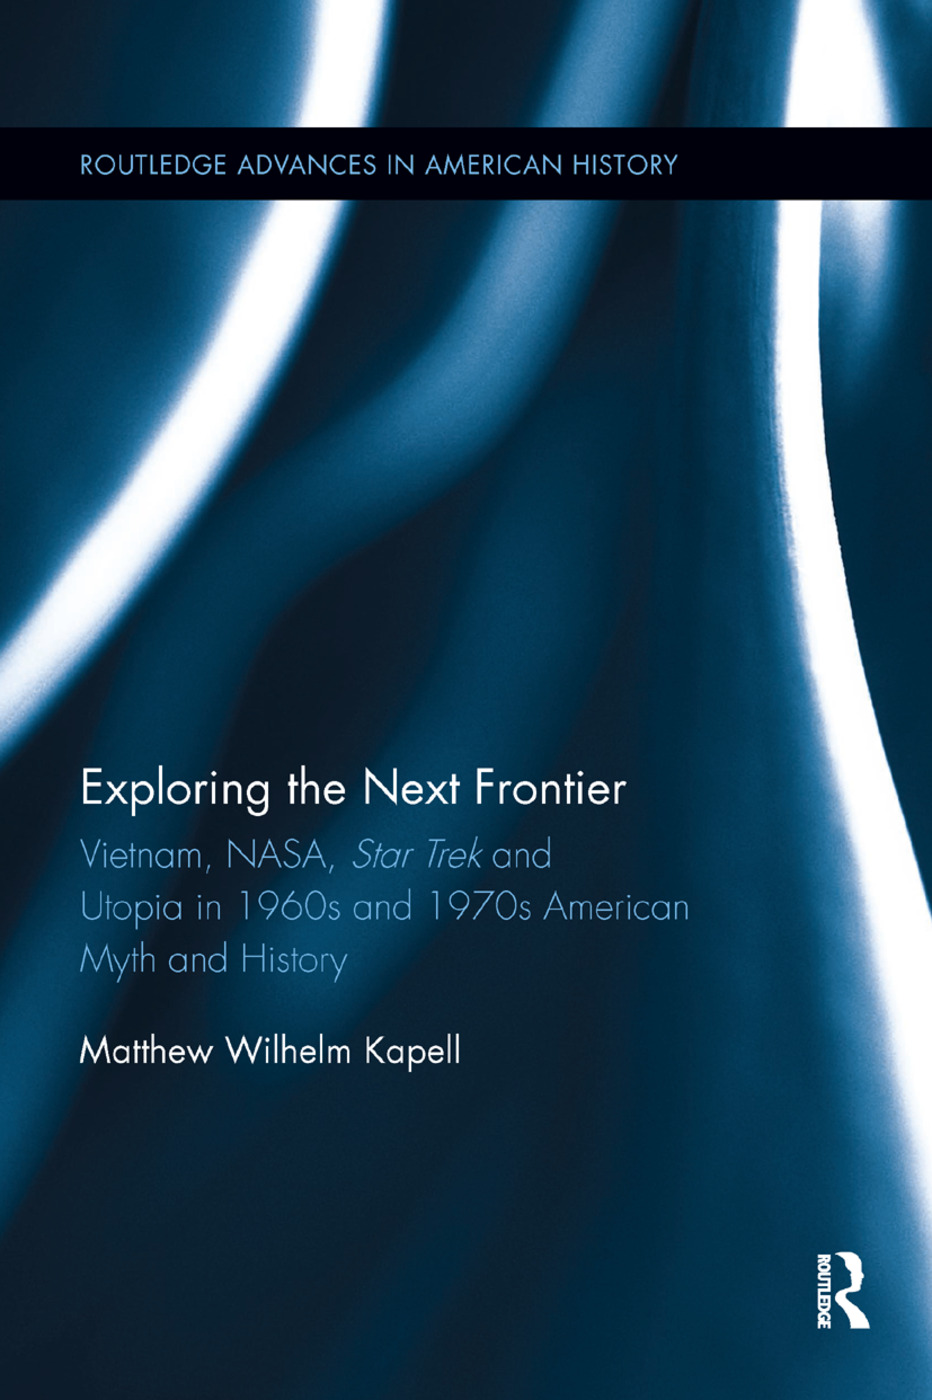 Exploring the Next Frontier: Vietnam, NASA, Star Trek and Utopia in 1960s and 70s American Myth and History book cover